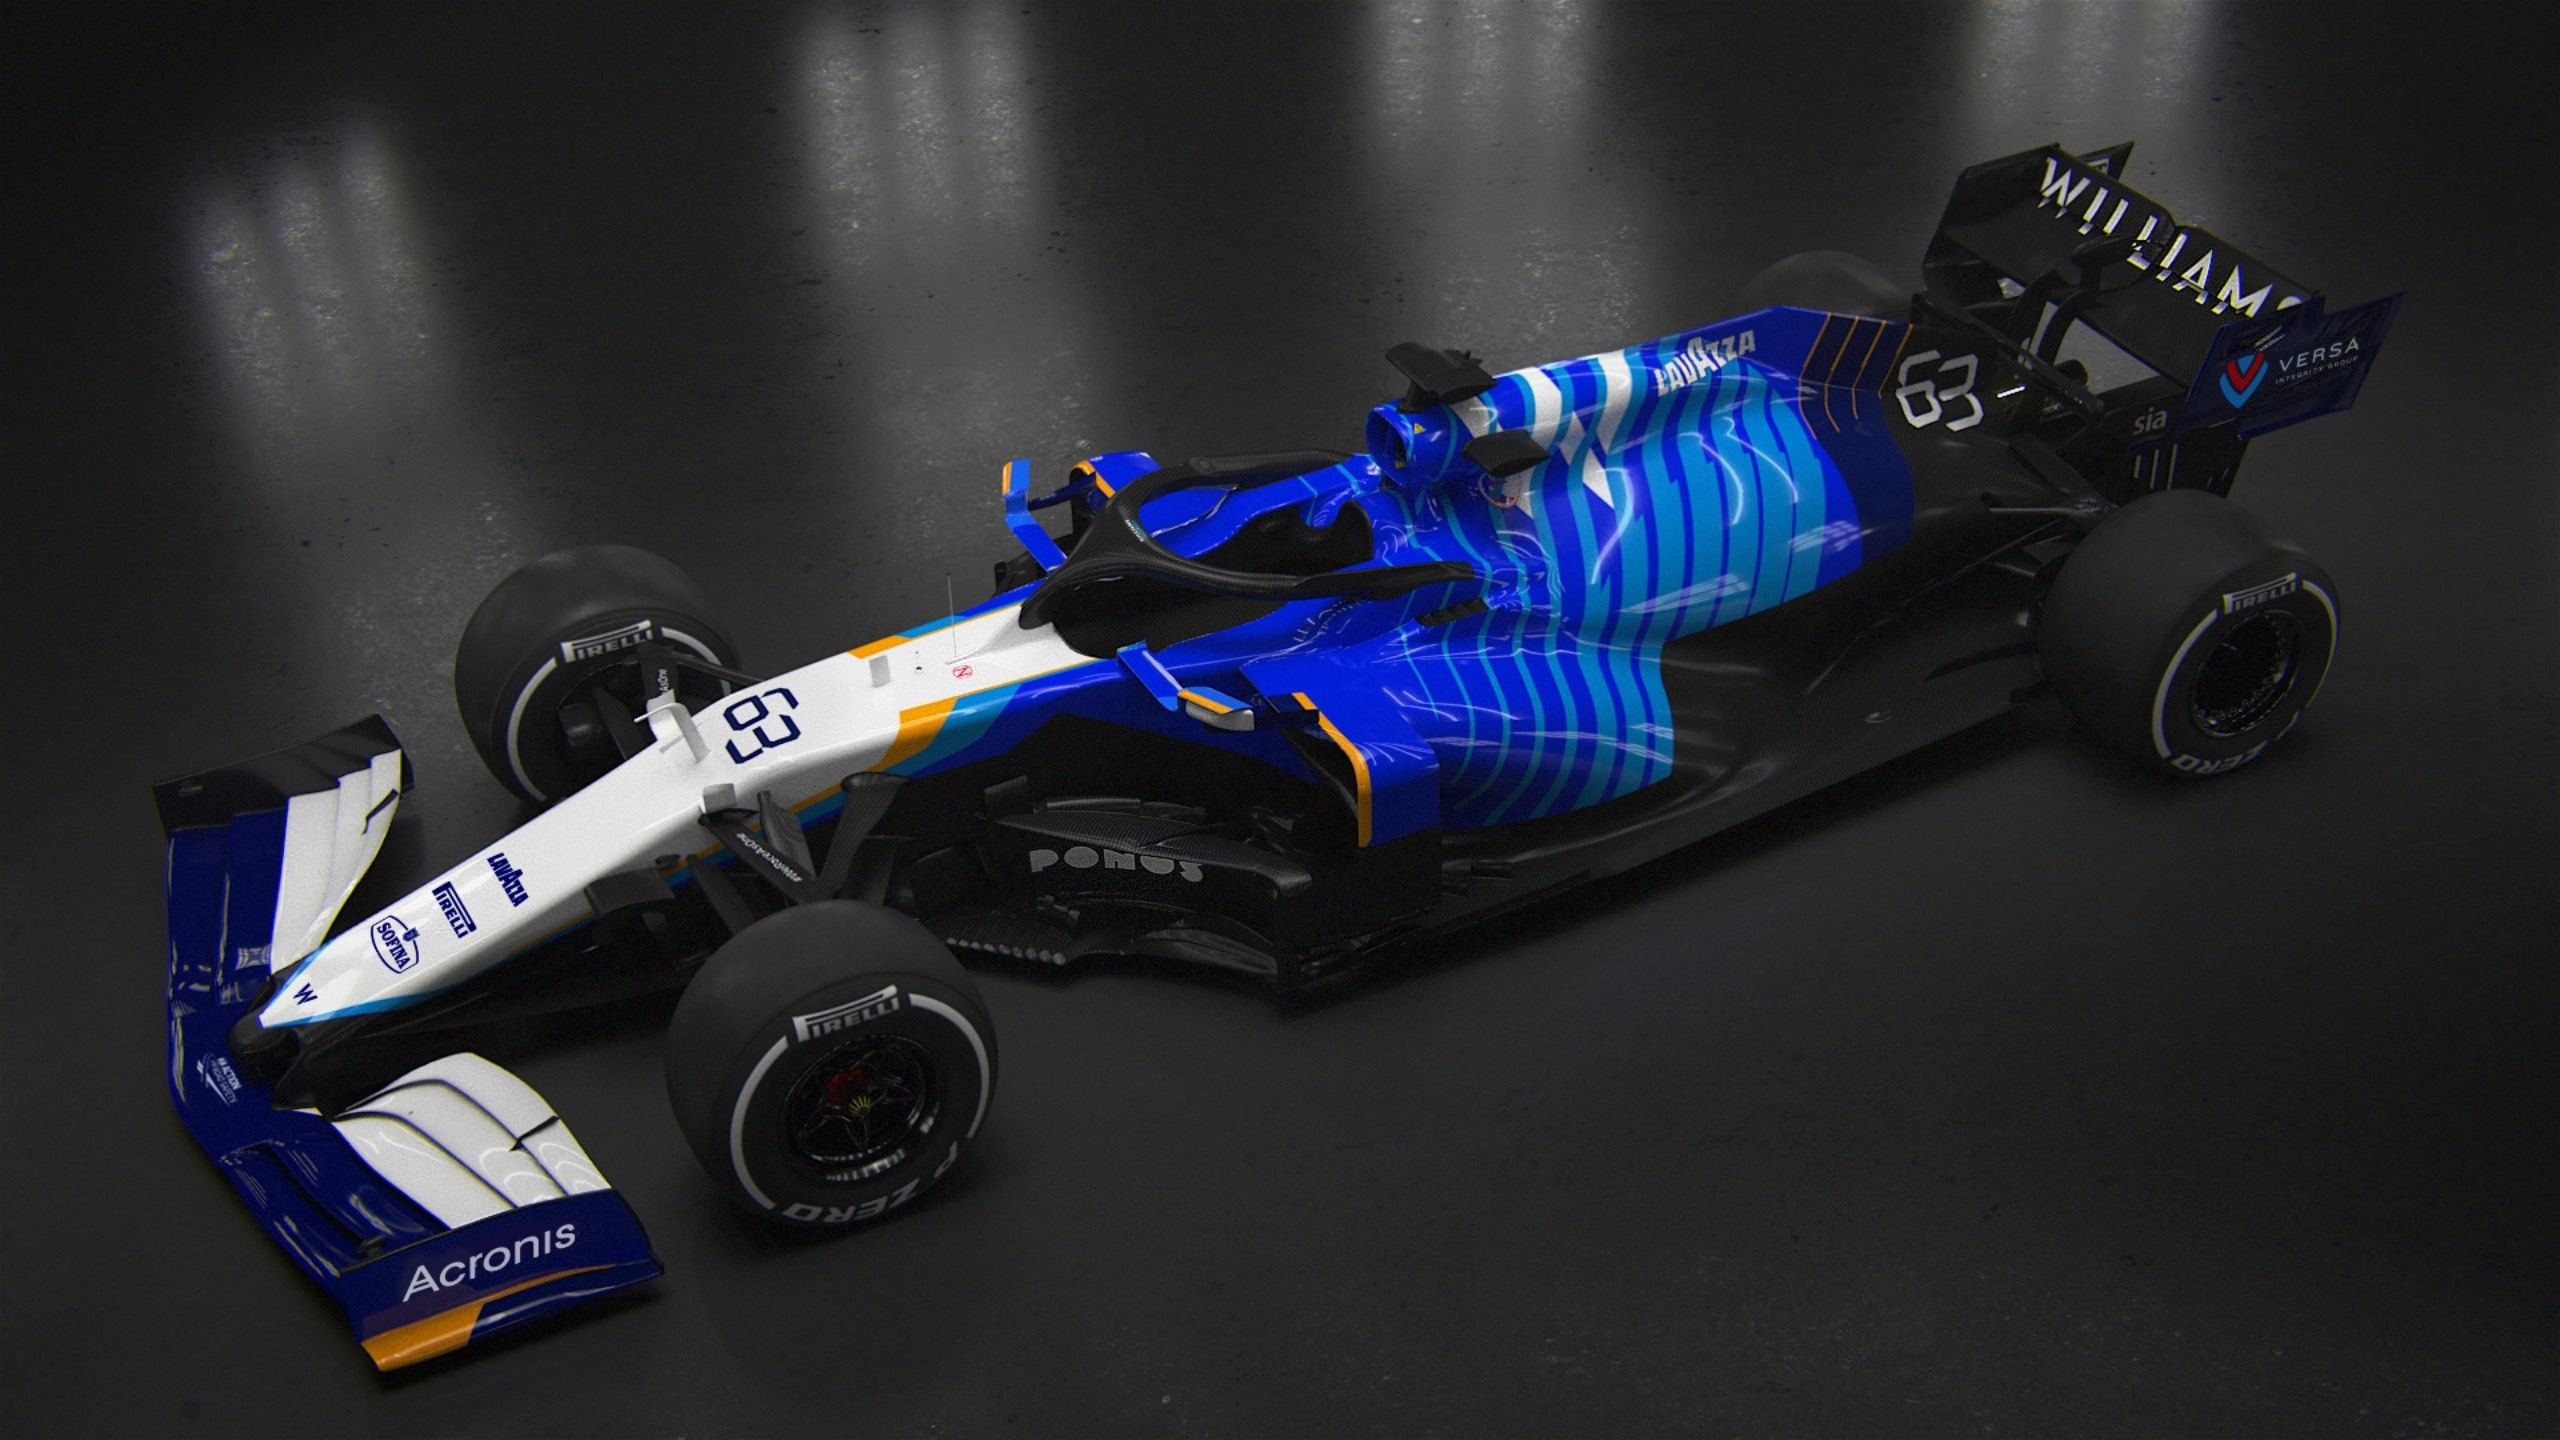 """""""Seriously not cool!"""" - Williams F1 FW43B augmented reality launch hacked; George Russell vents out"""